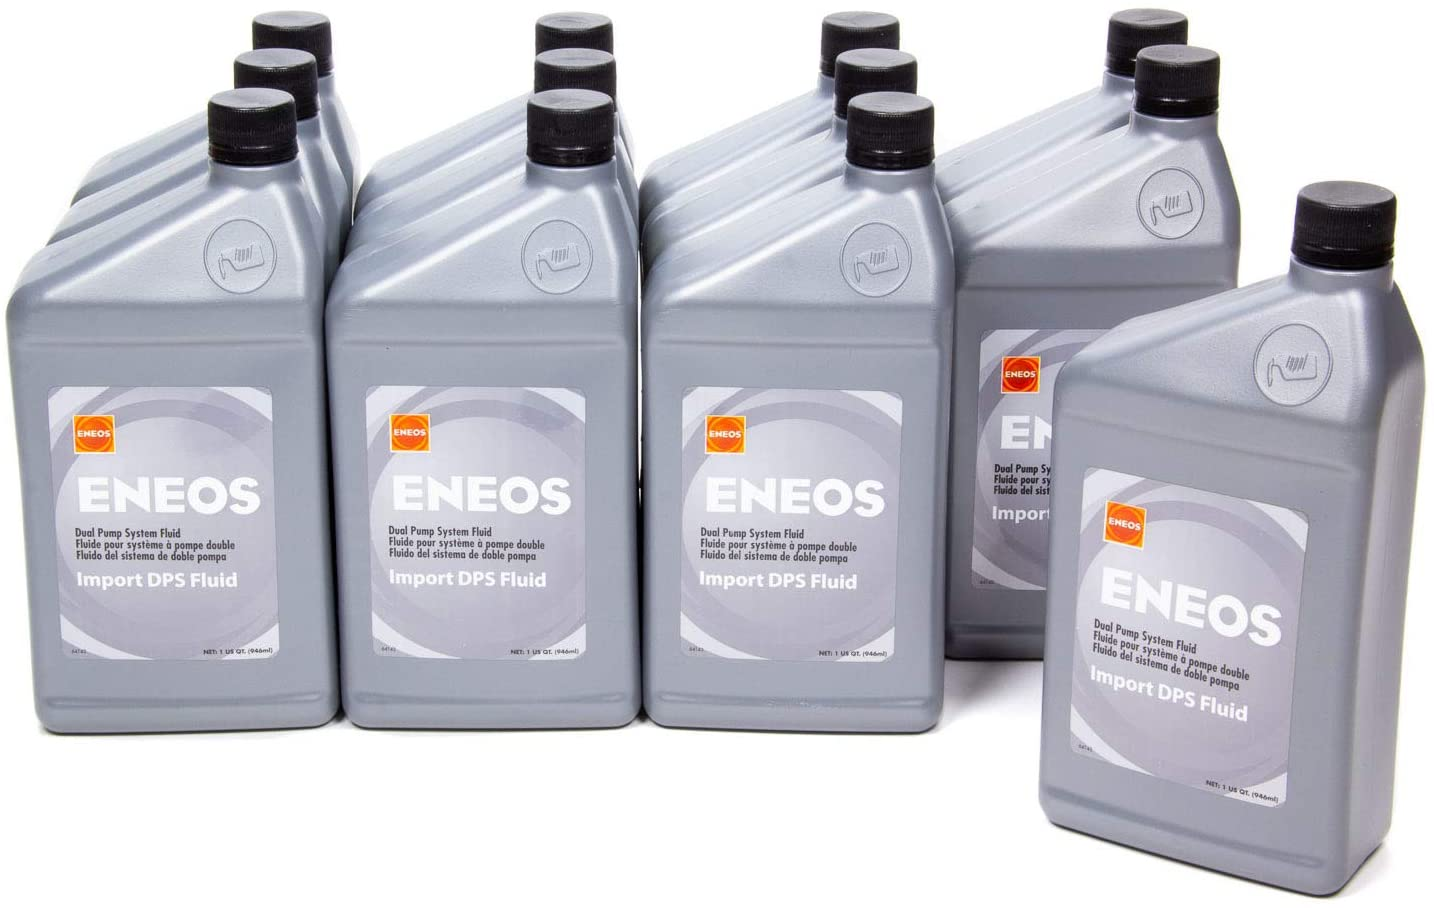 Eneos 3410-301 Transmission Fluid, 12 Quart, 1 Pack